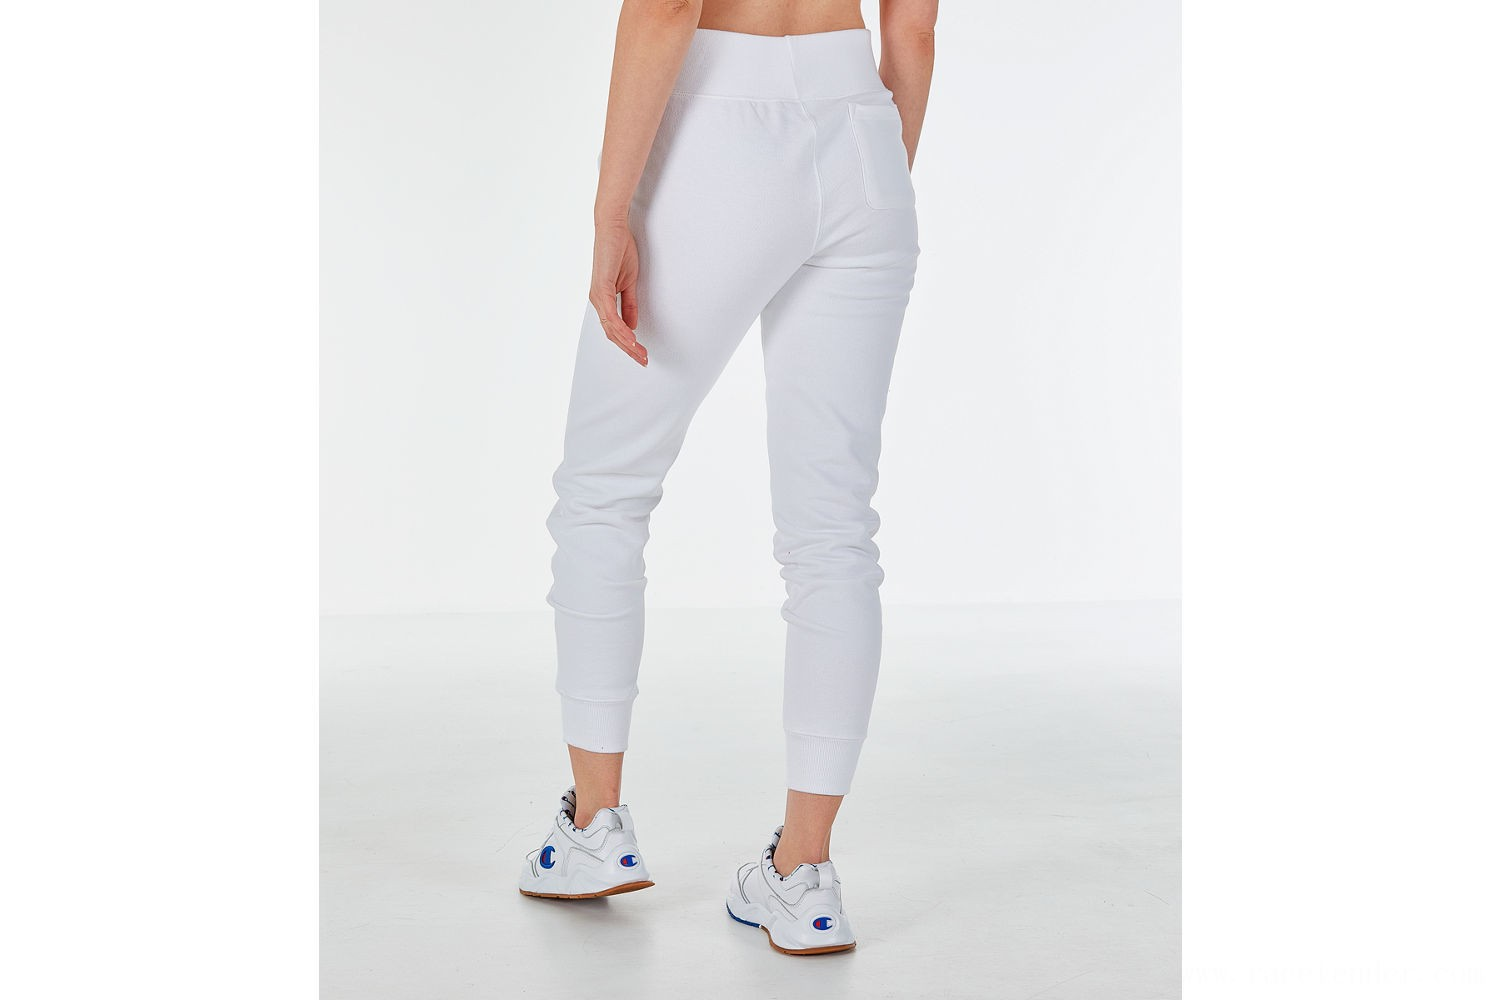 Champion Women's Reverse Weave Chenille Jogger Sweatpants - White